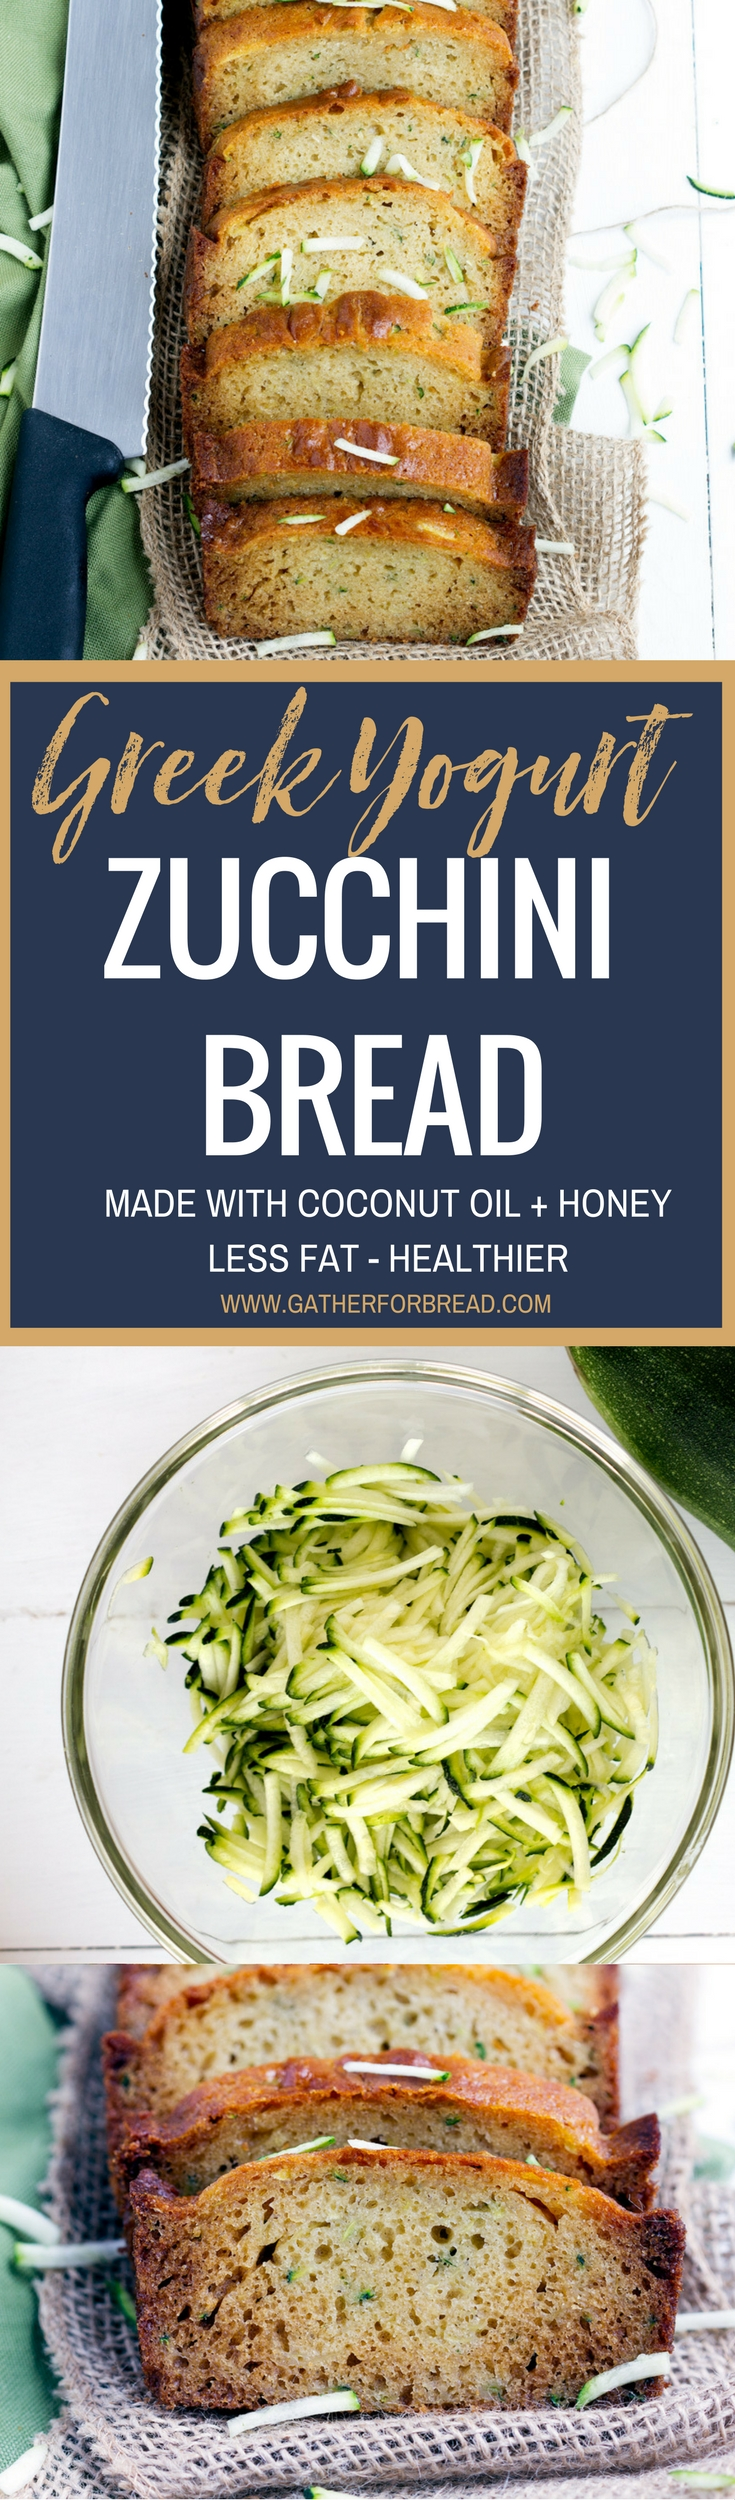 Greek Yogurt Zucchini Bread - Traditional homemade zucchini bread made healthy with Greek Yogurt, coconut oil and honey. Less fat yet still makes a moist delicious loaf that's easy to make.